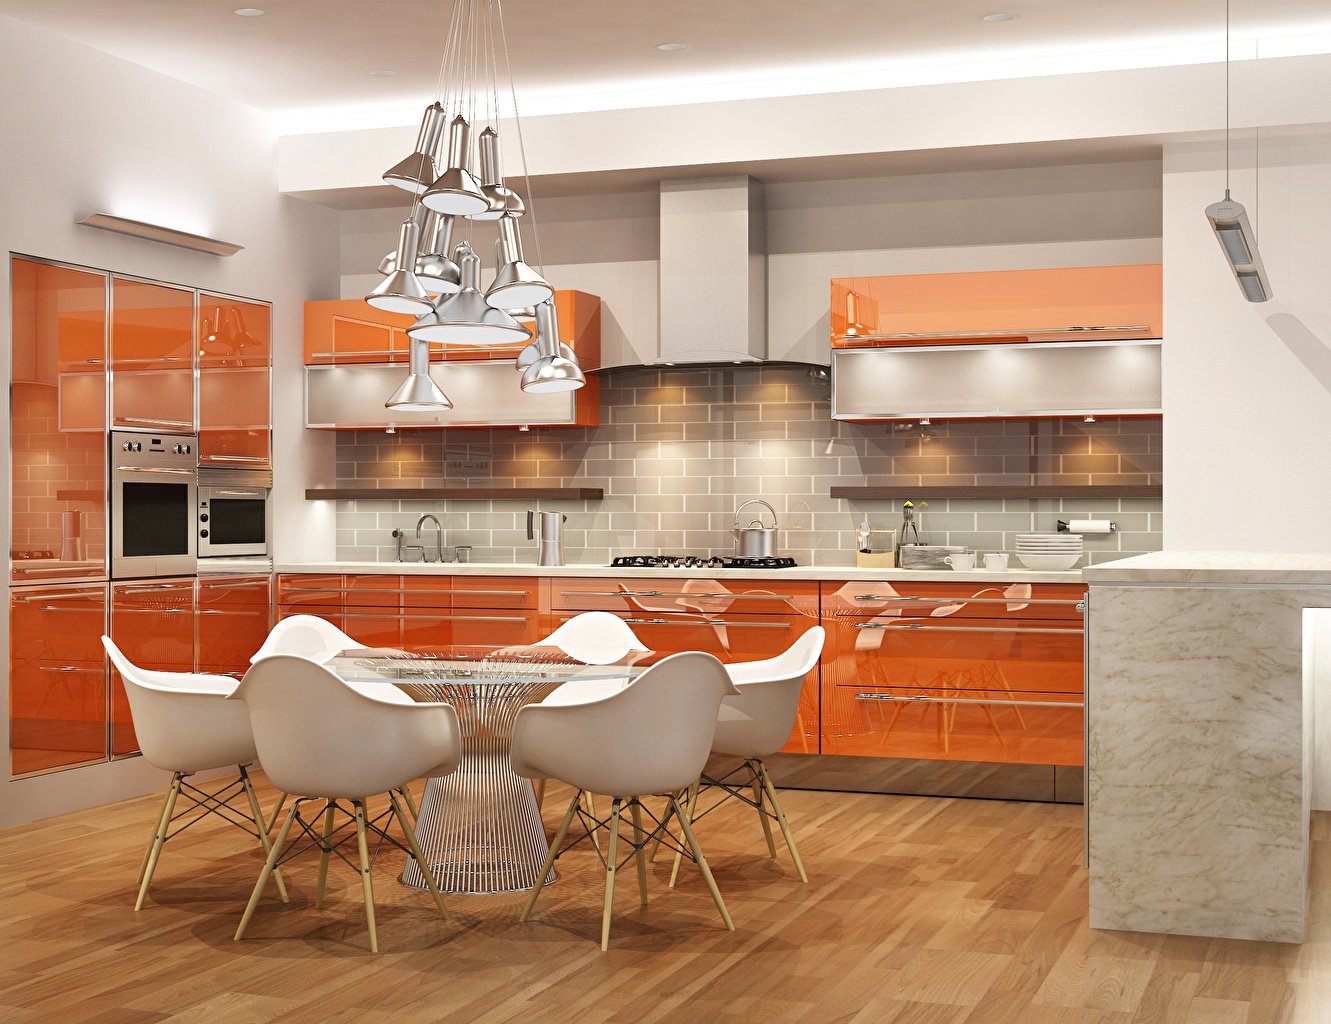 interior design kitchen table photos kitchen 3d graphics interior lamp table chairs design 895